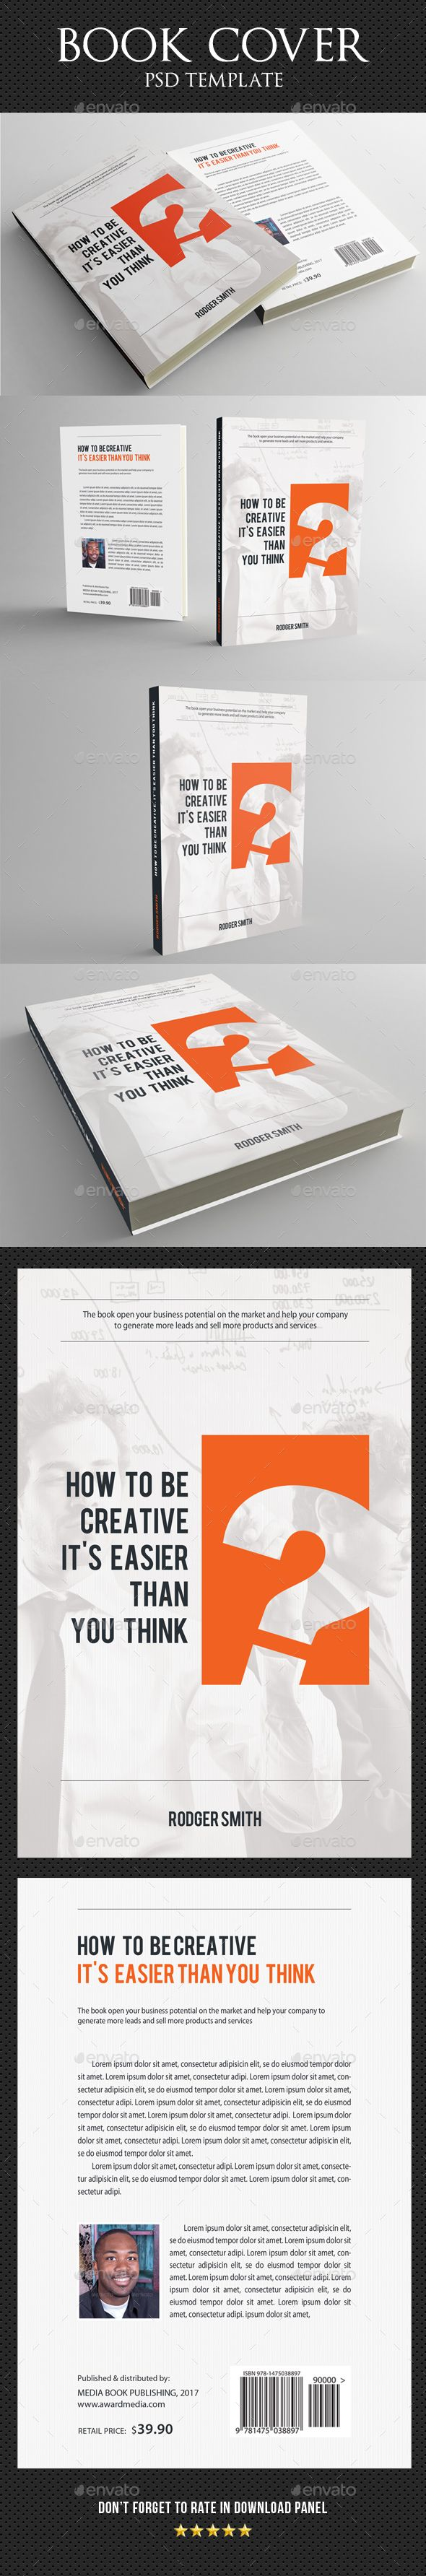 best ideas about book cover design template book cover template 22